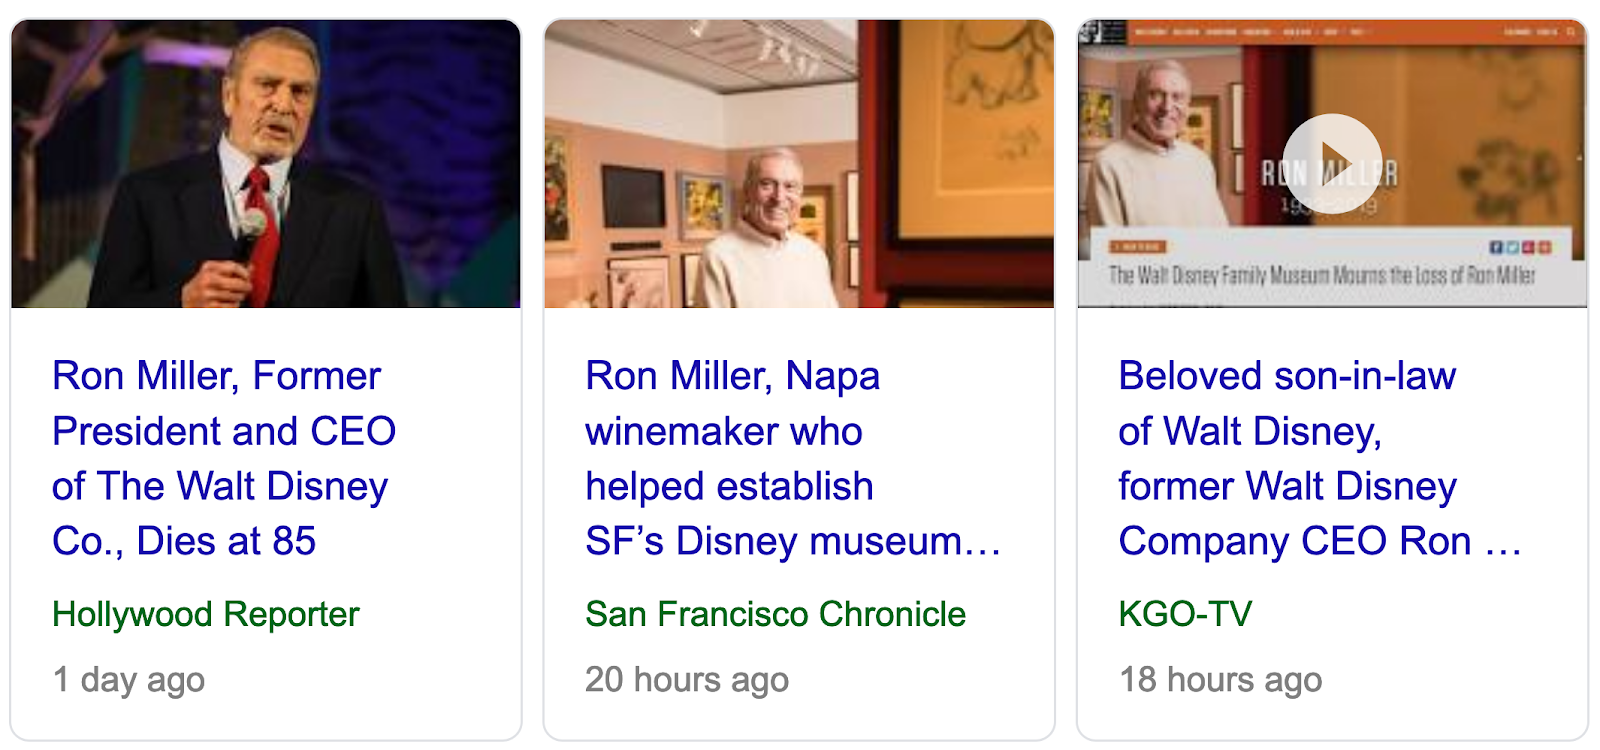 29 53 63 67 85 86 133   Ron Miller  former NFL player and Disney CEO